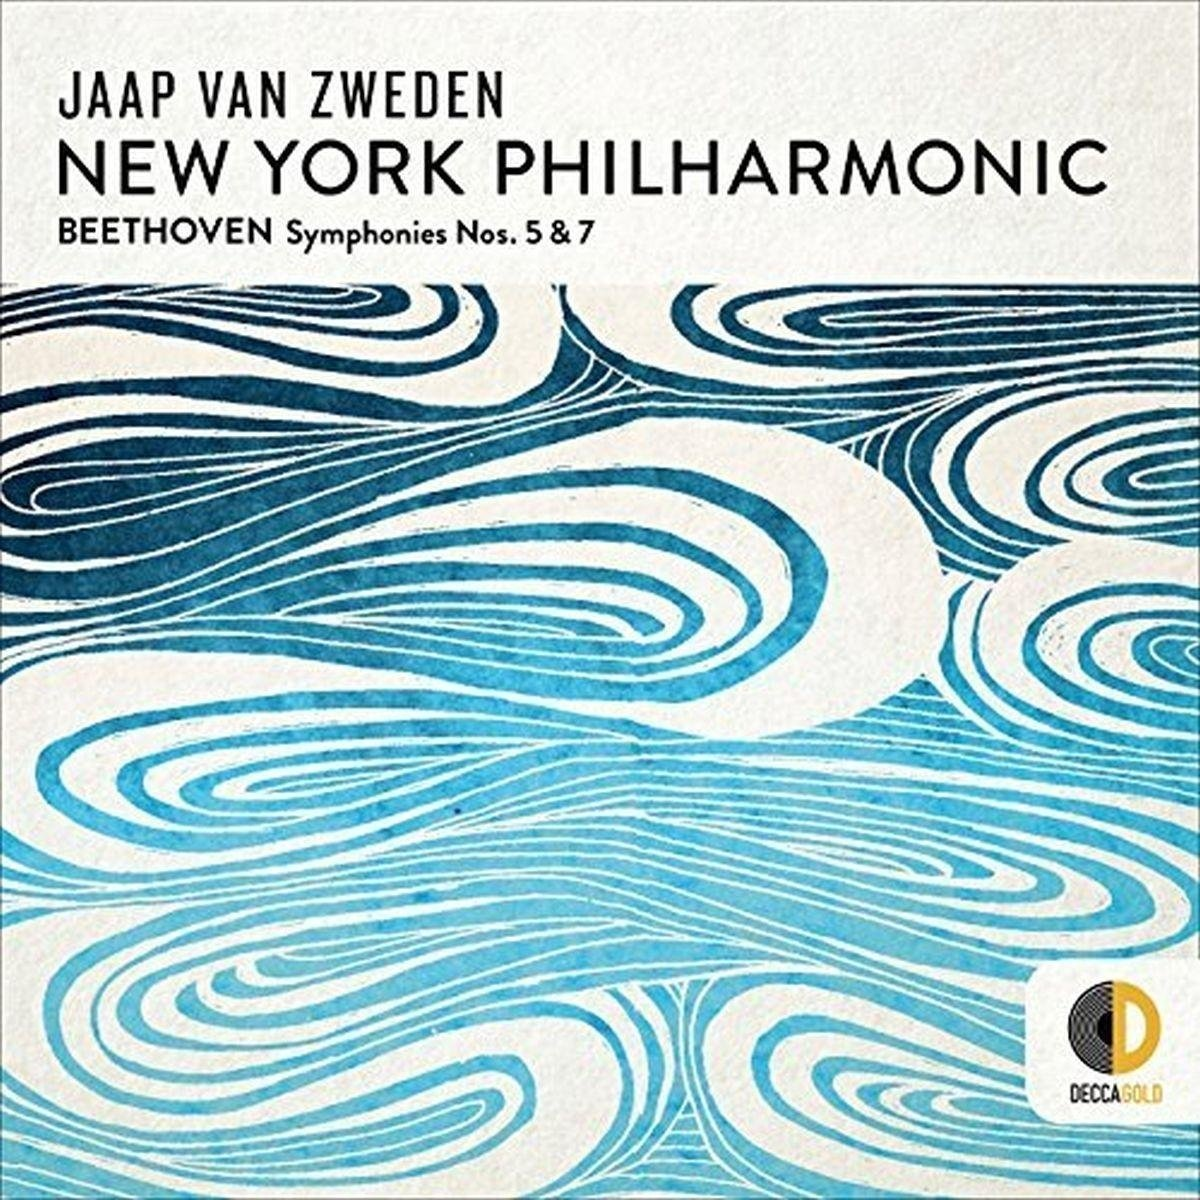 Beethoven Symphonies Nos. 5 & 7  conducted by Jaap